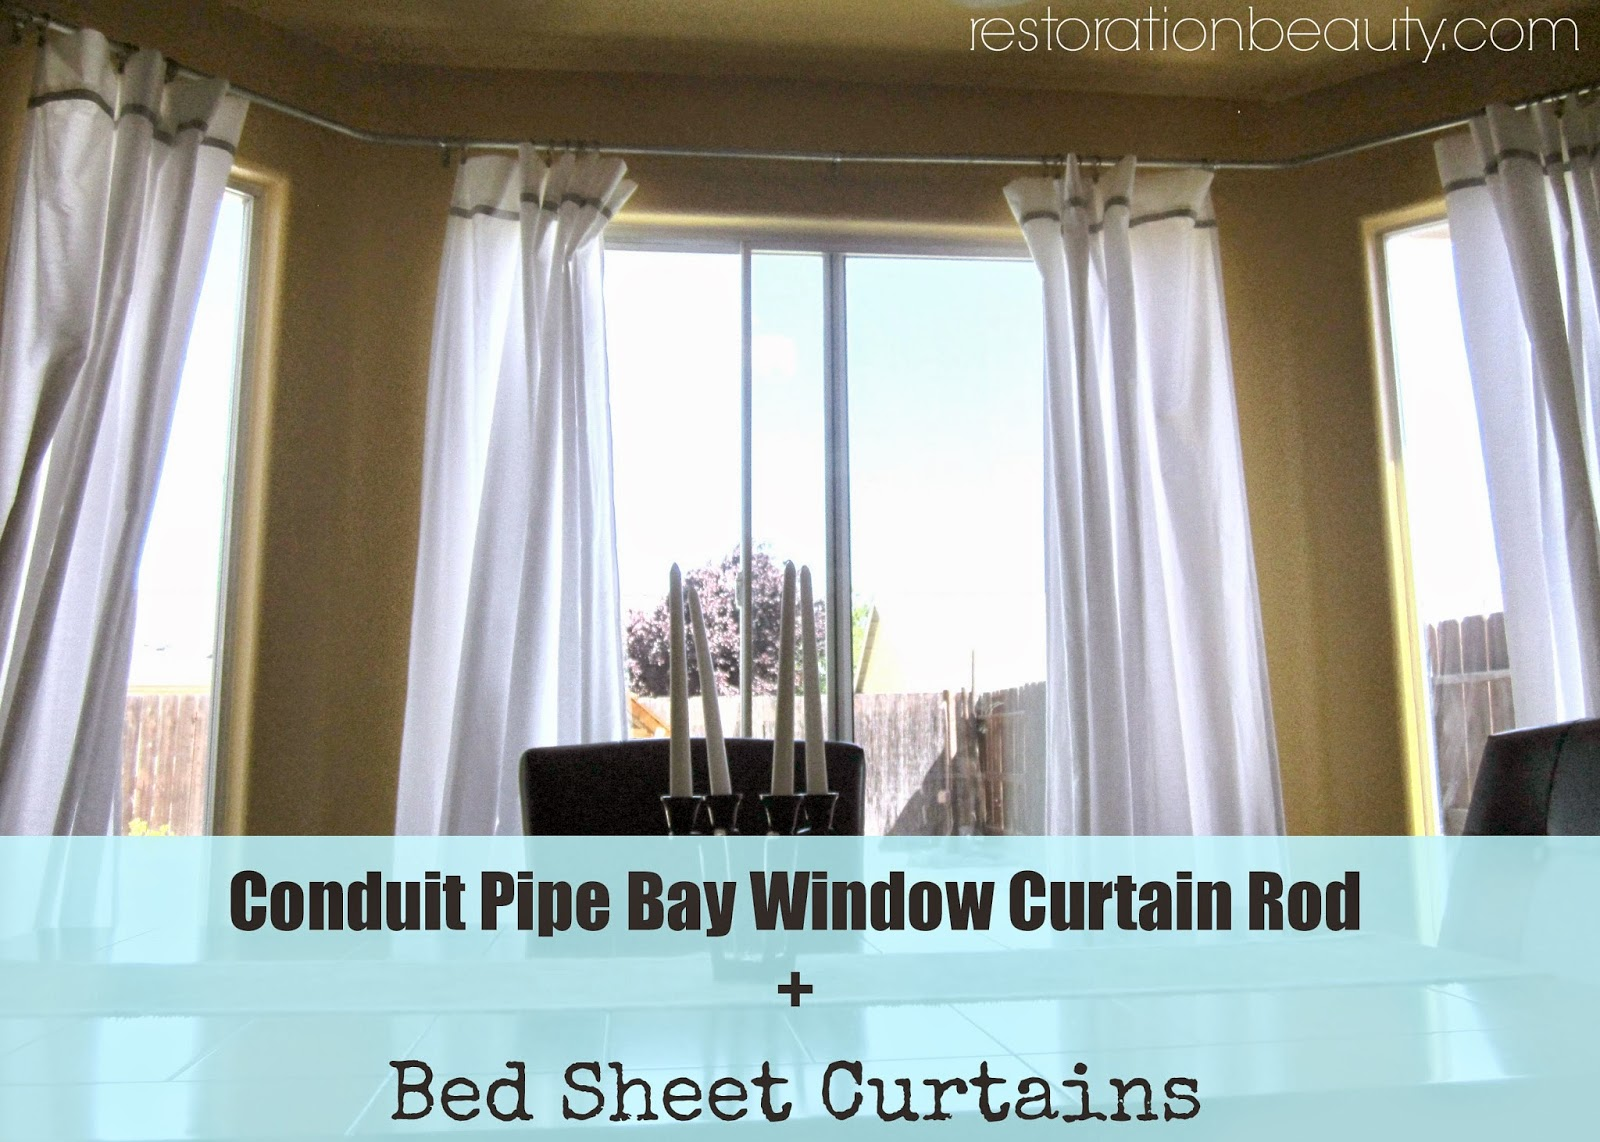 Restoration Beauty Conduit Pipe Bay Window Curtain Rod Bed Sheet